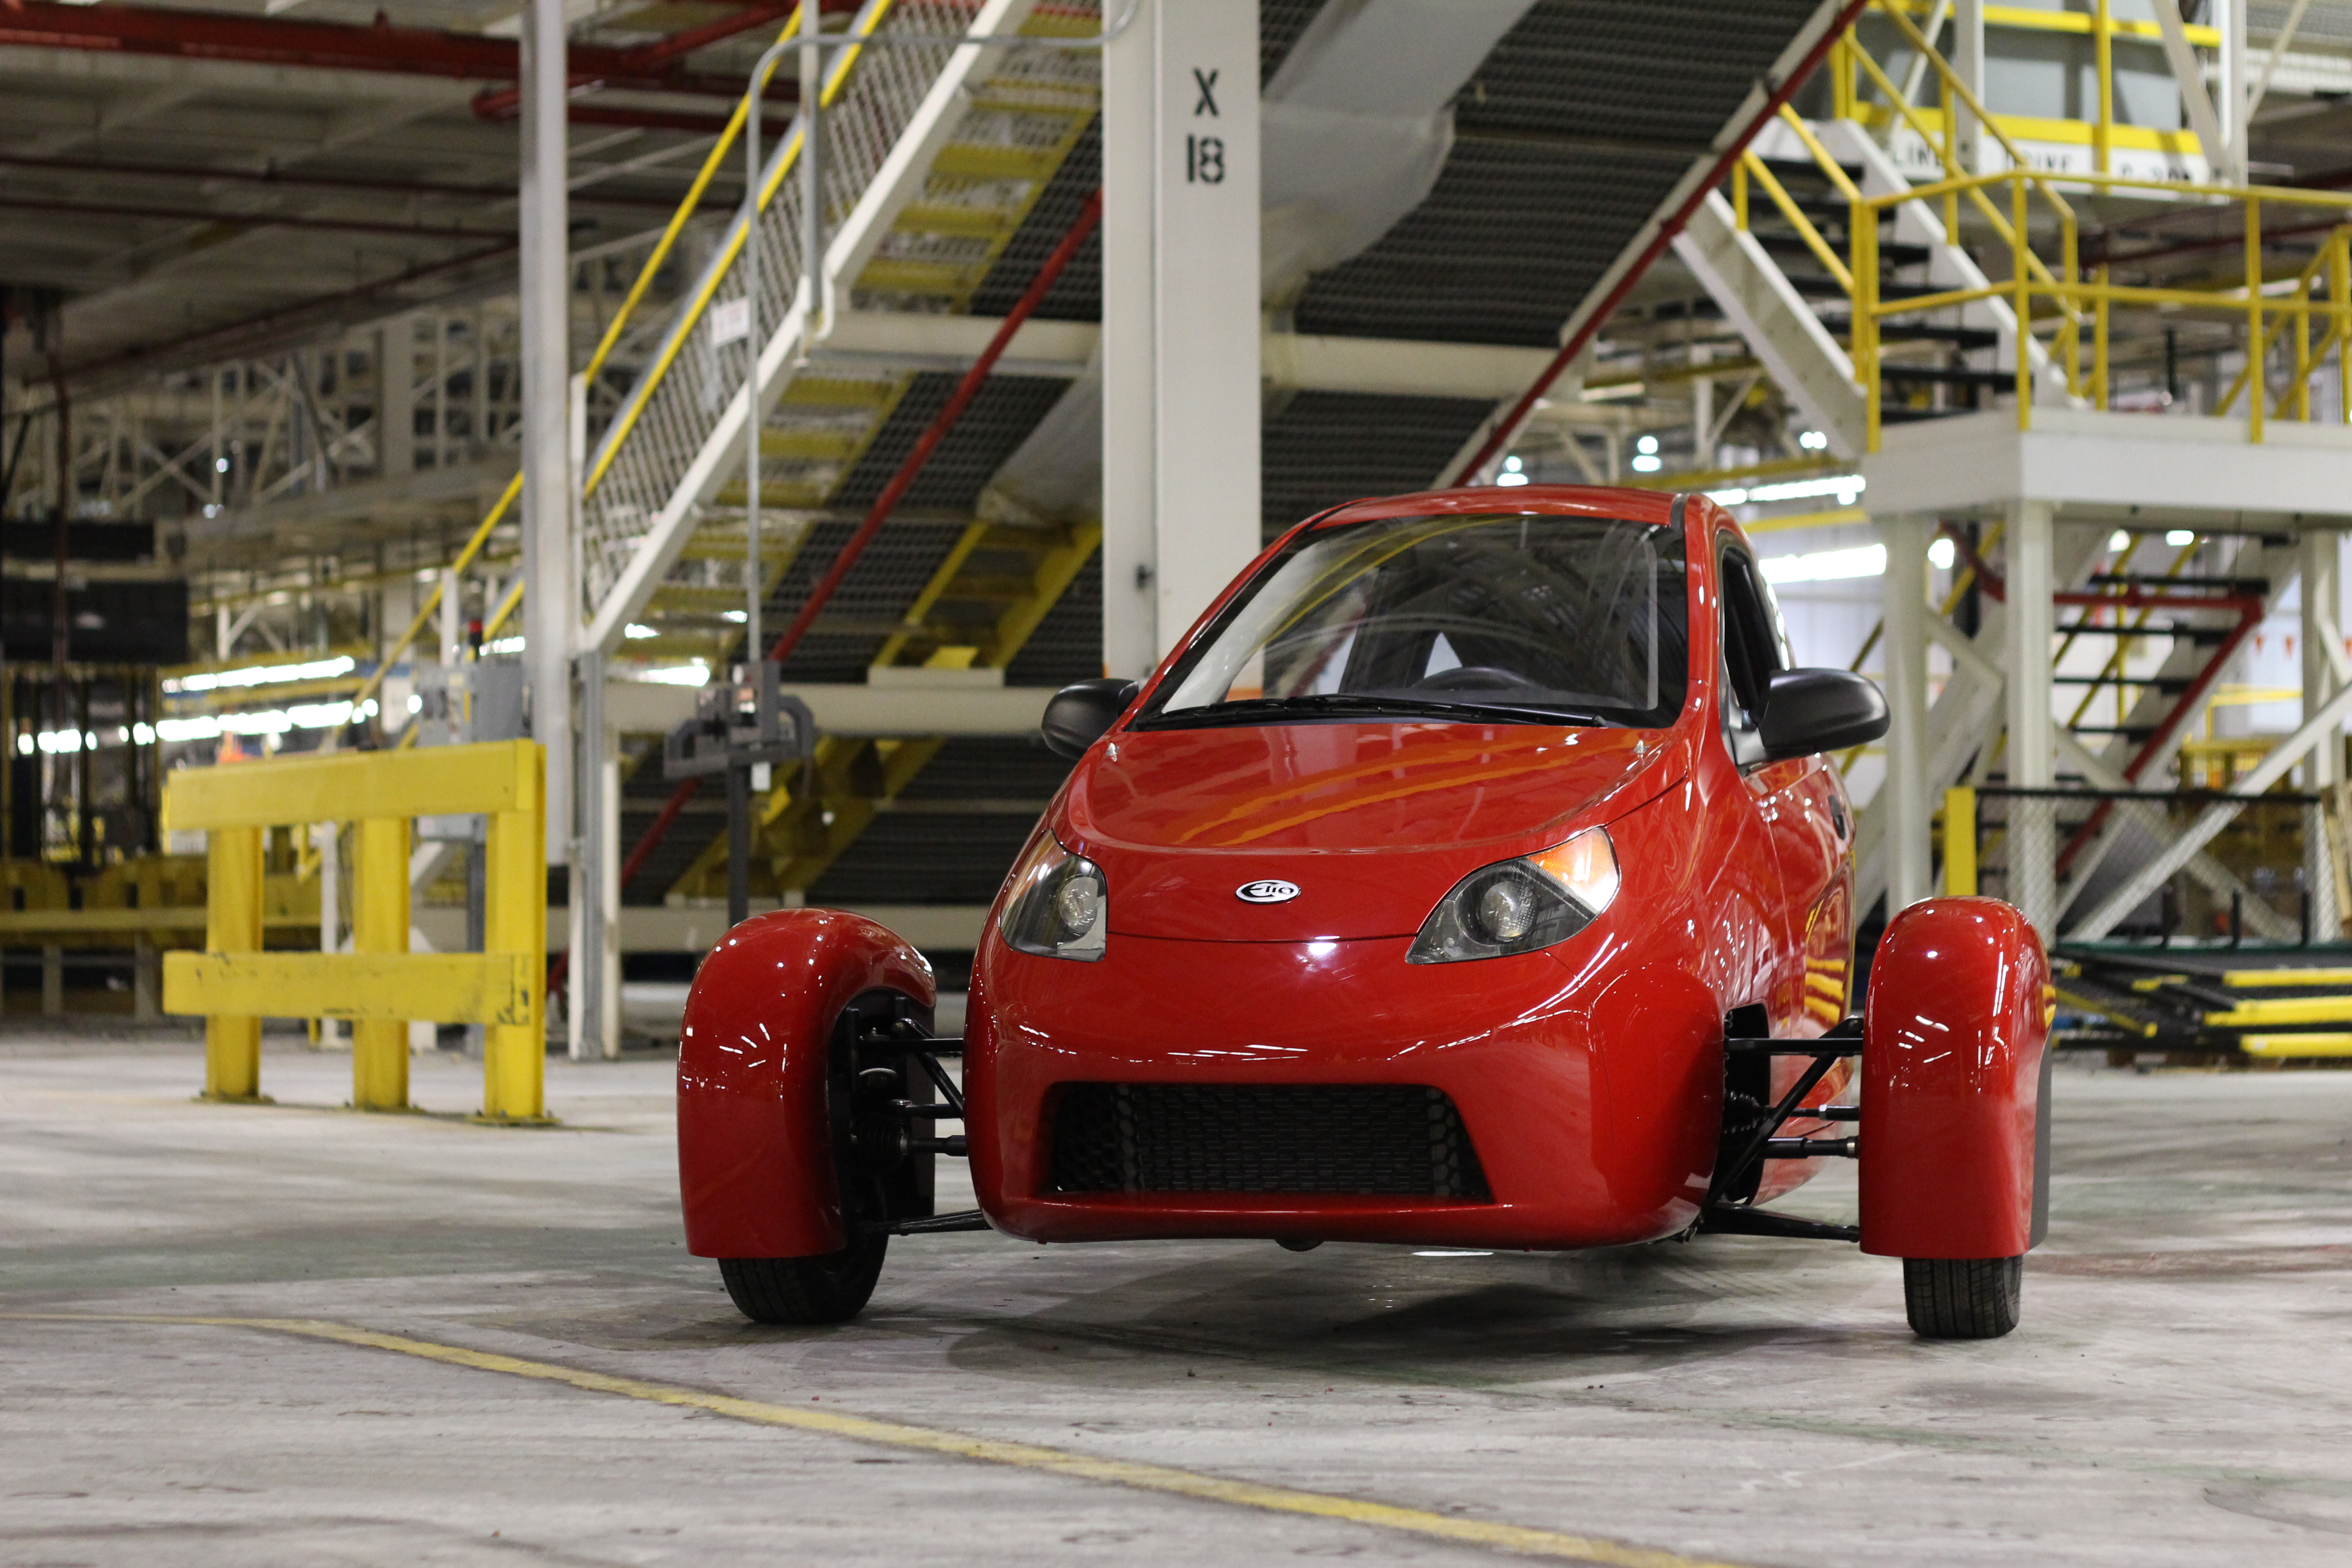 A pre-production version of the Elio vehicle.